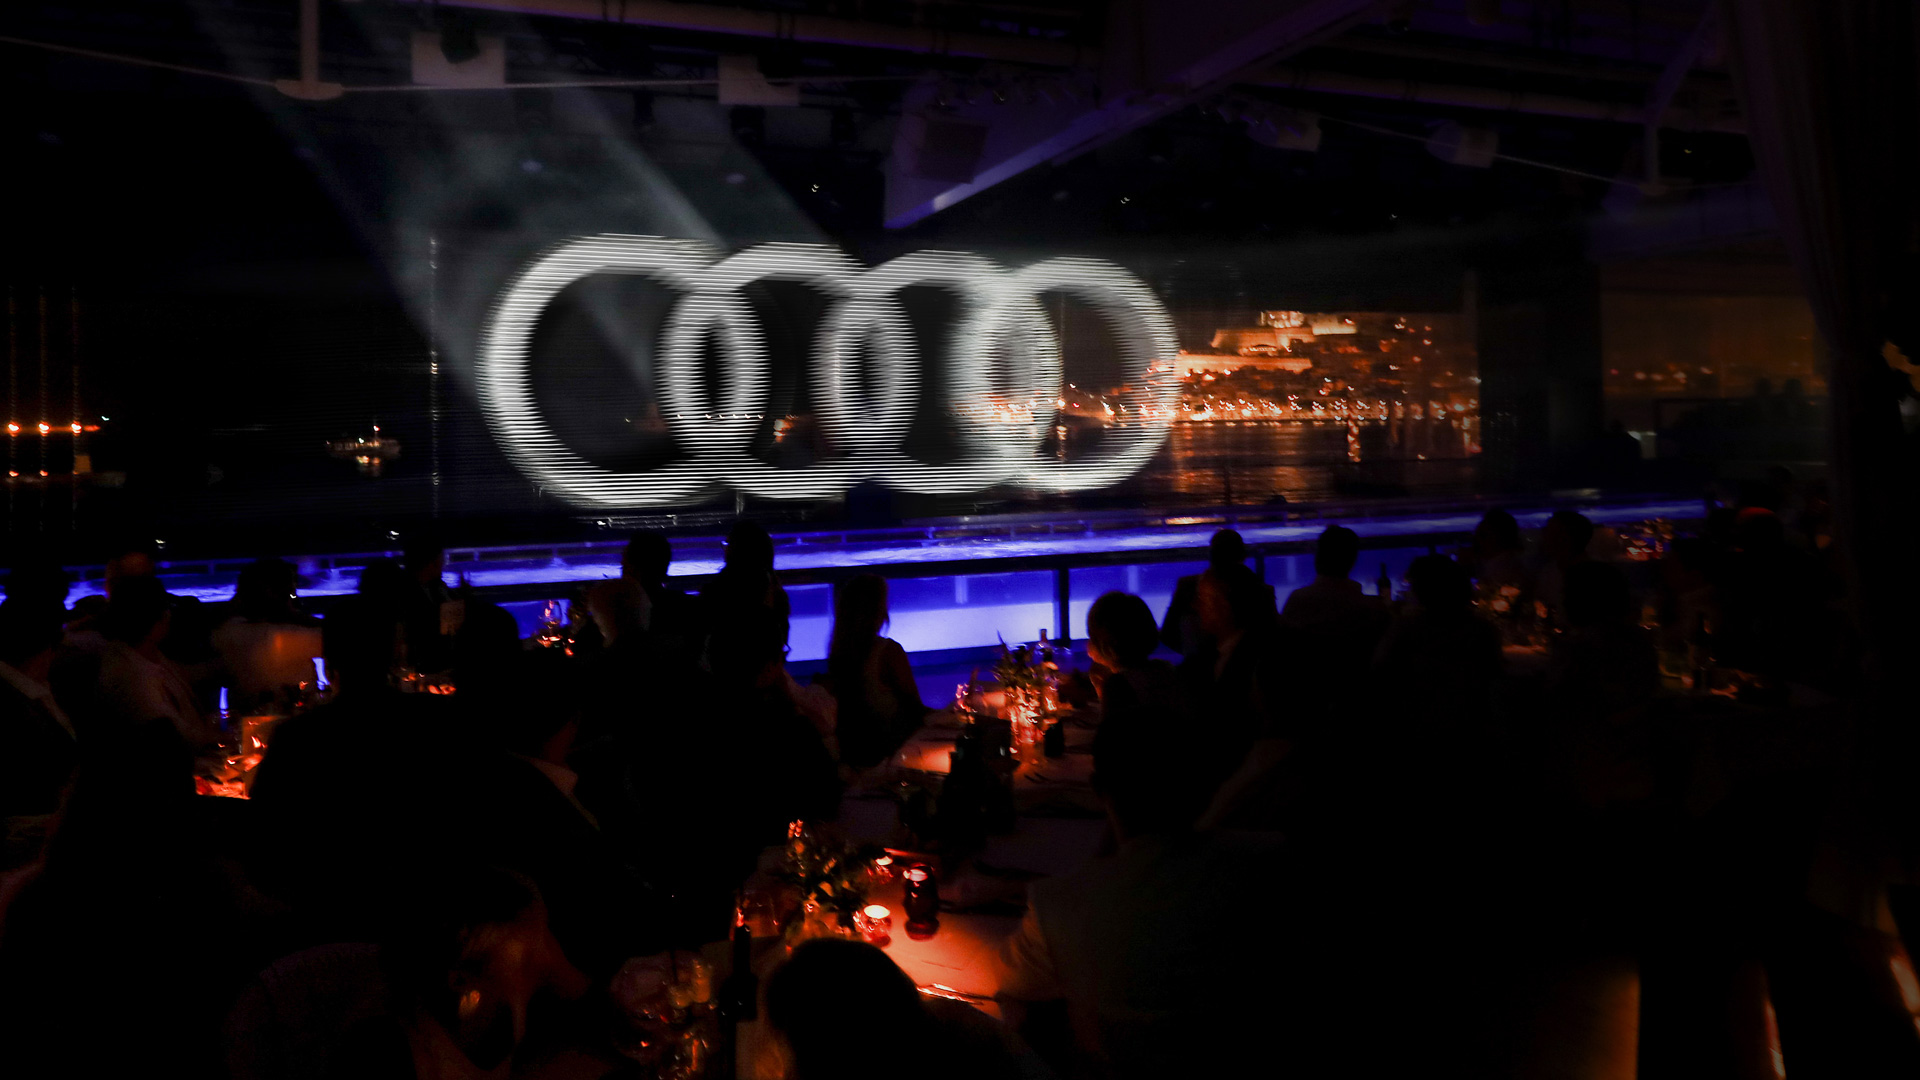 The guests of the award look through the transparent Audi logo made of nylon threads onto the illuminated old town of Ibiza.